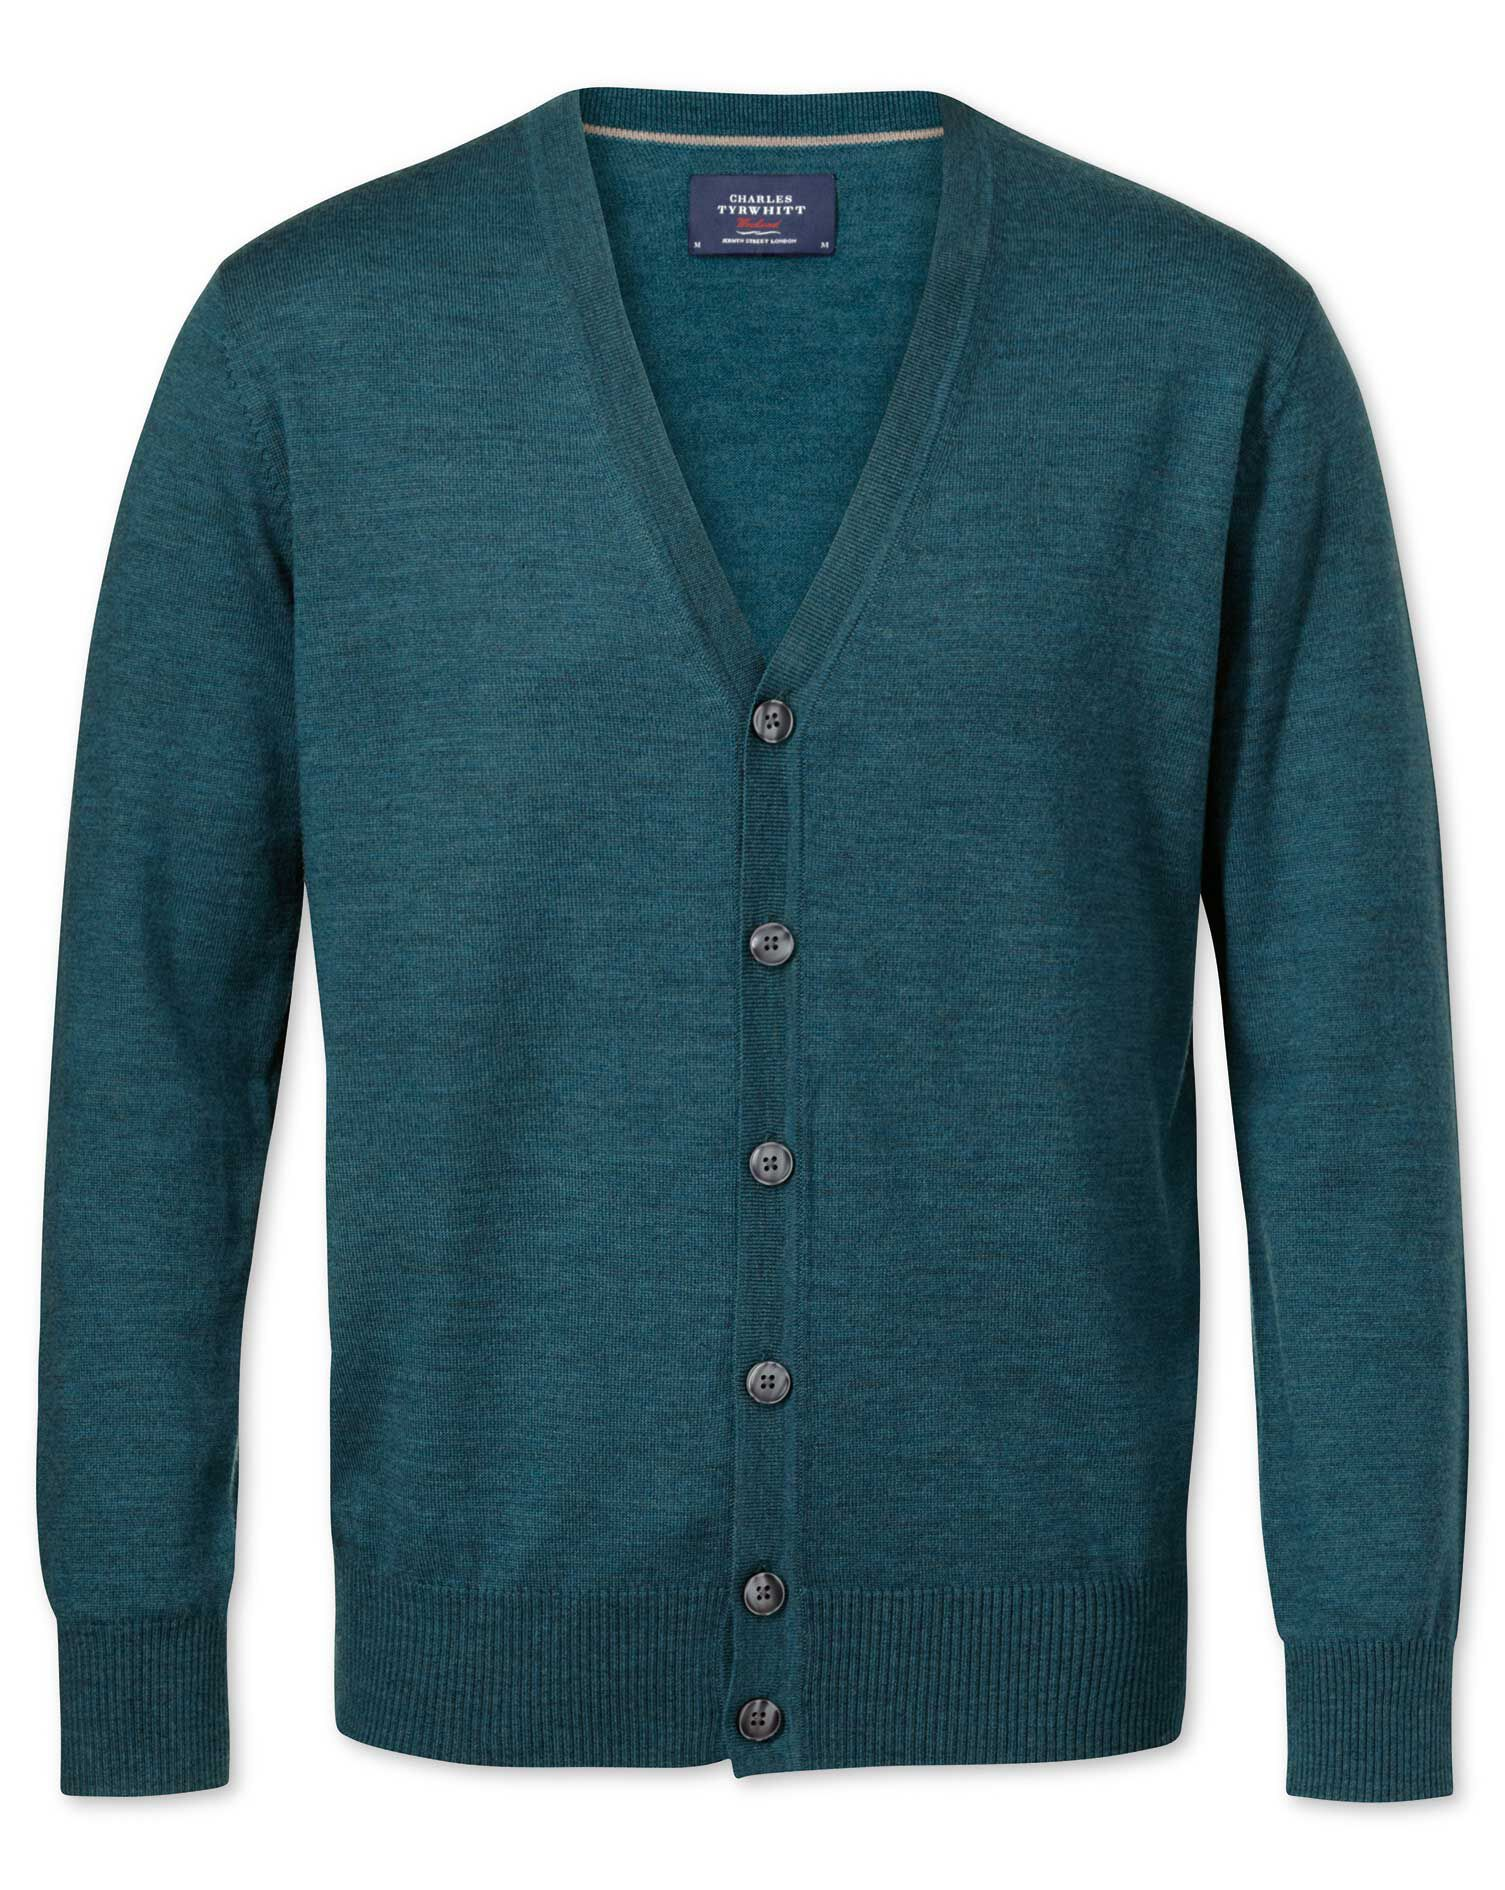 Green Merino Wool Cardigan Size Medium by Charles Tyrwhitt